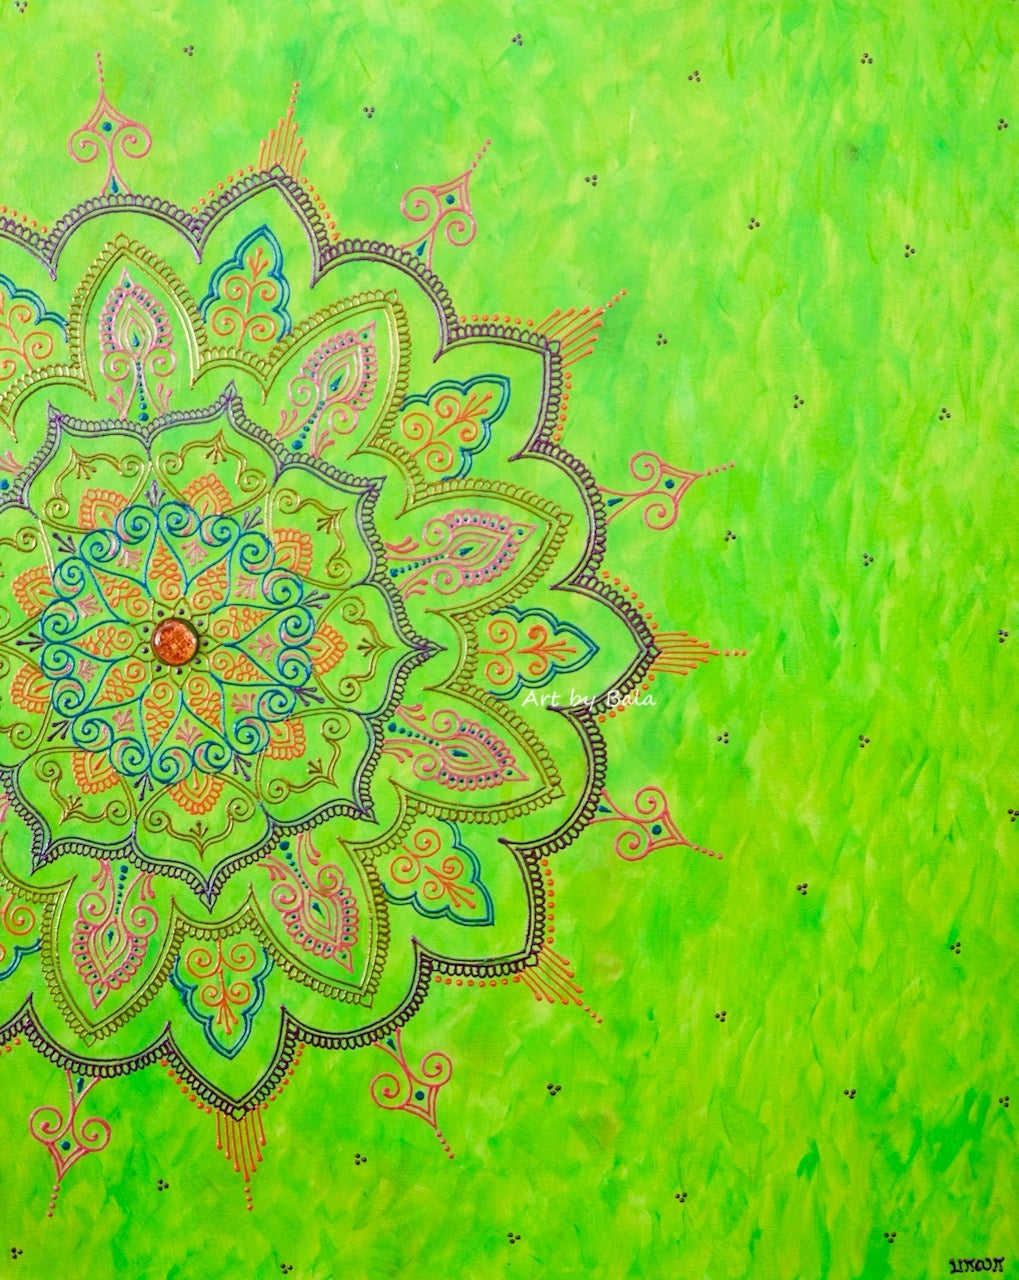 Delight Mandala - Art by Bala